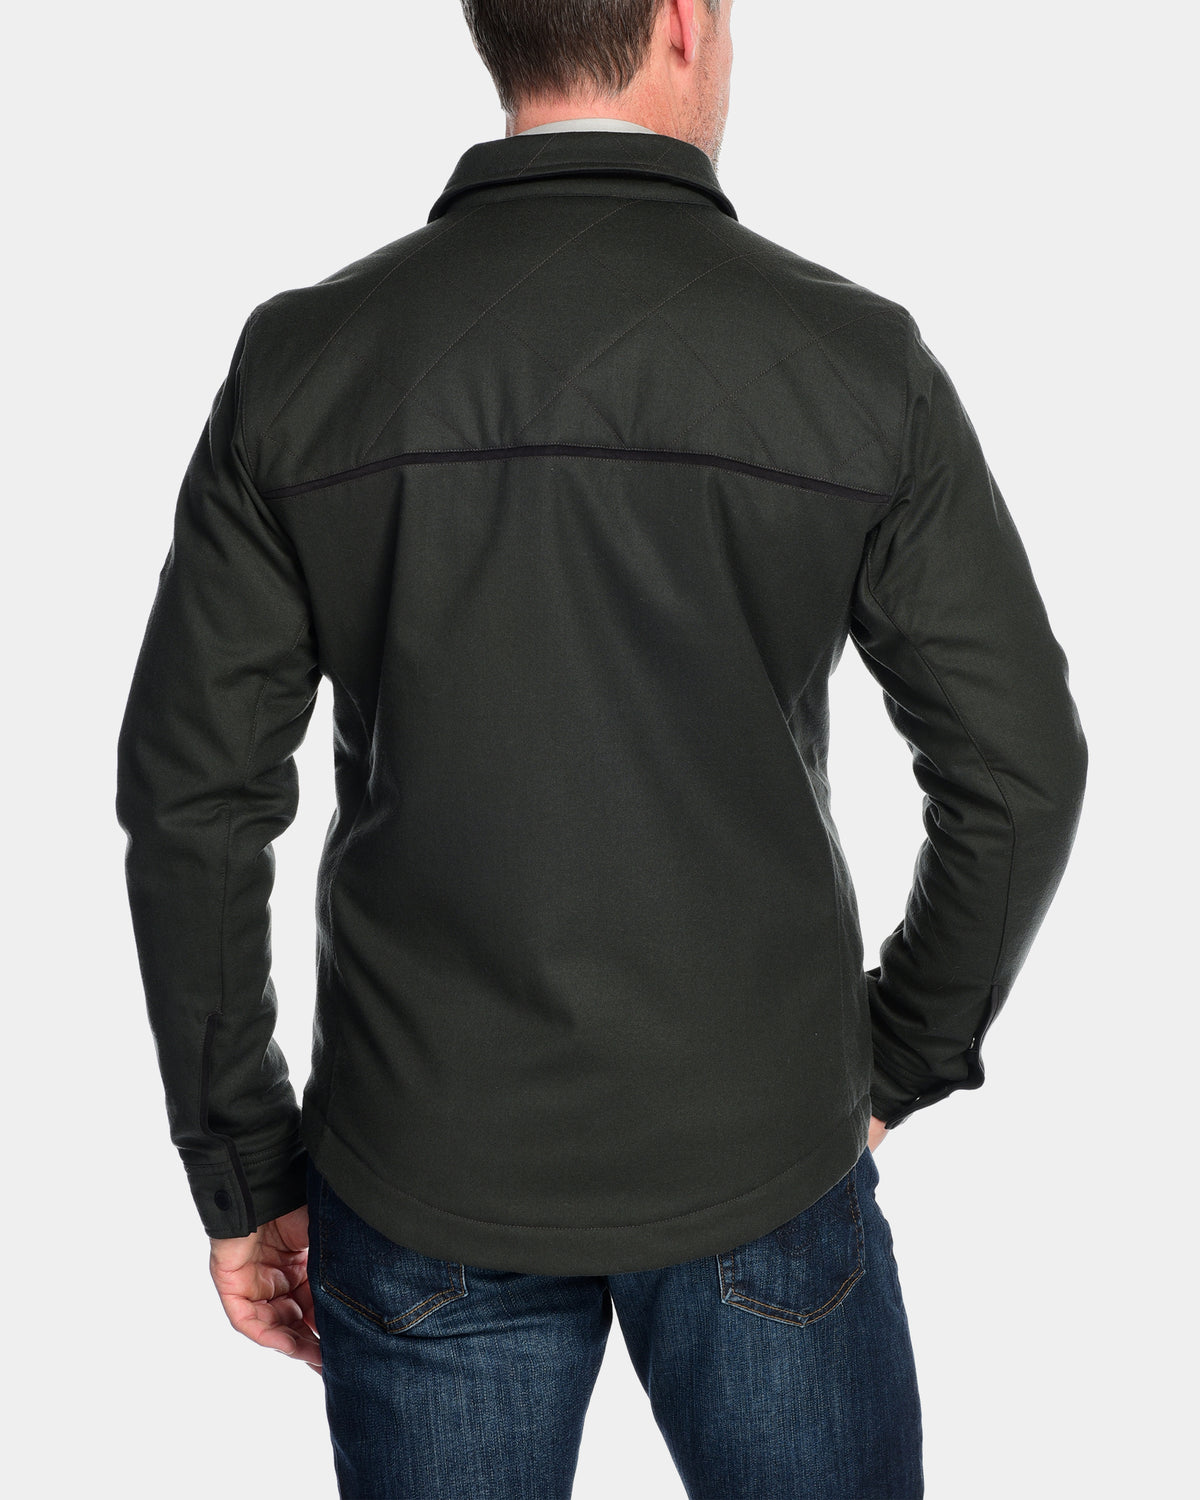 Men's Birmingham CPO Jacket